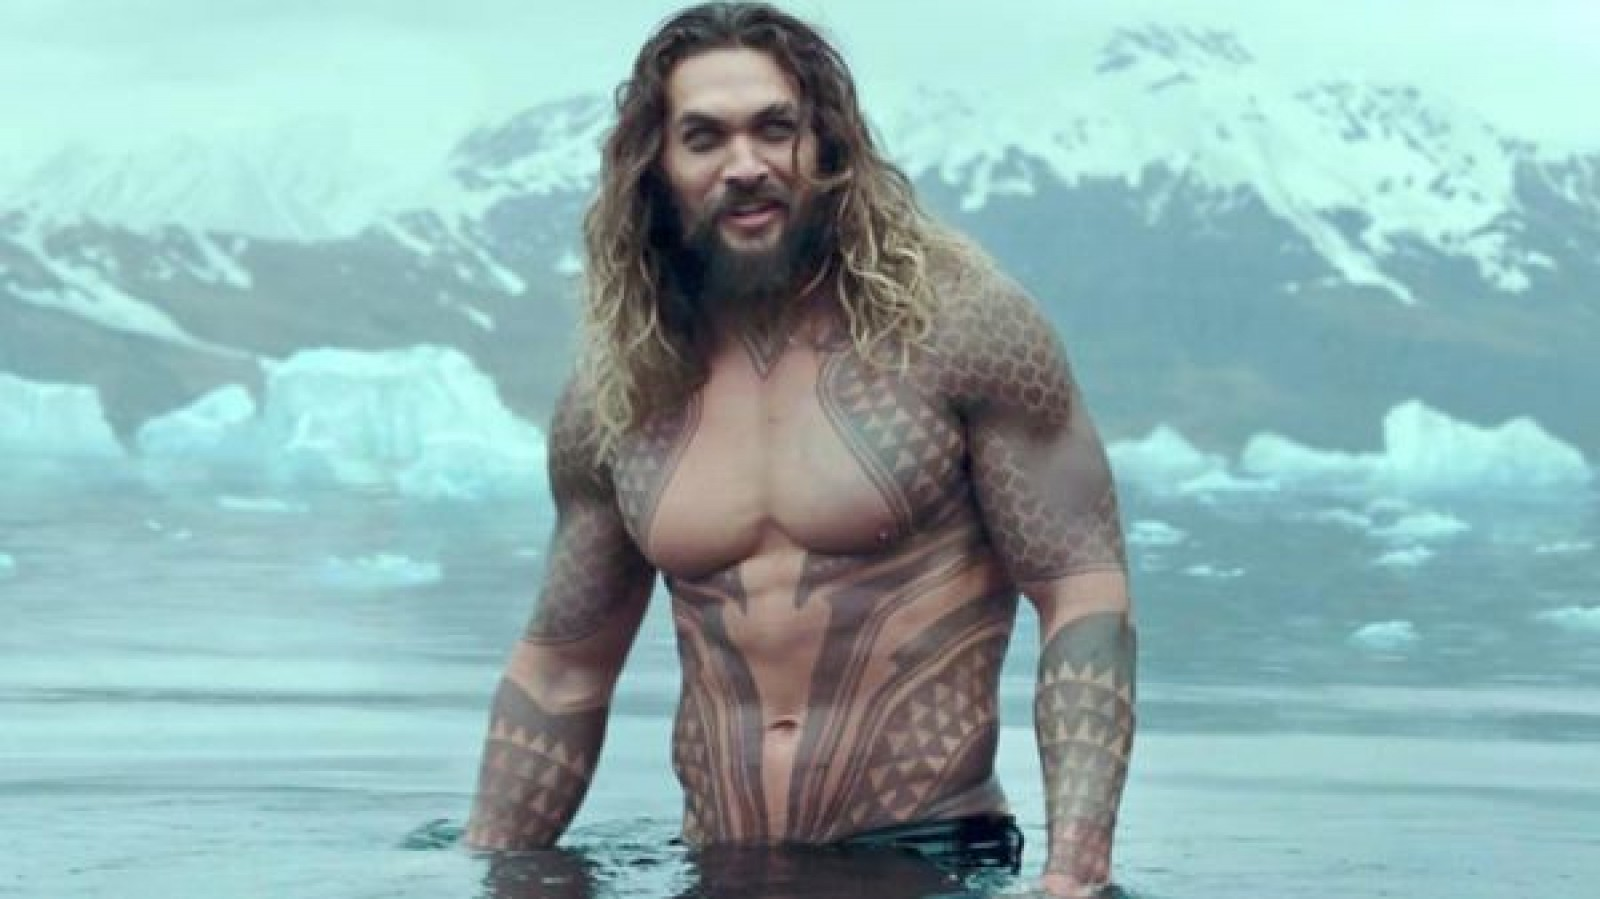 justice_league_aquaman_jason_momoa.jpg